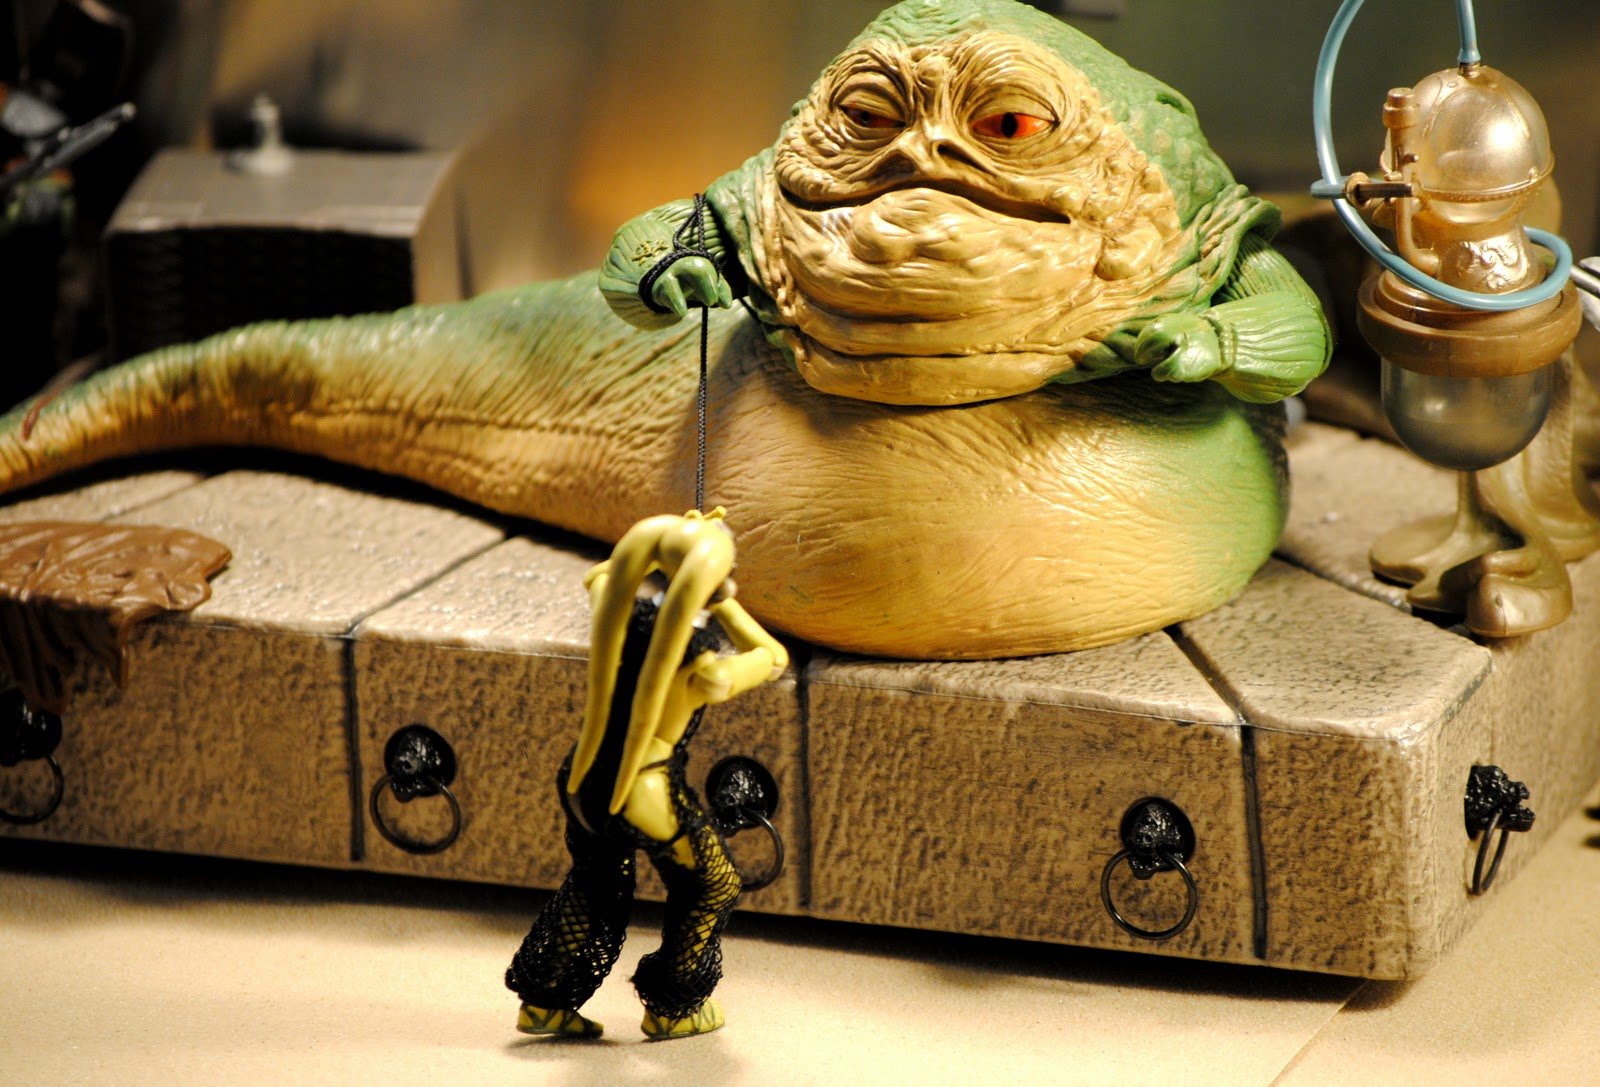 & ACTION FIGURE EMPIRE: Jabba The Hutt and Oola: The Dance of Death